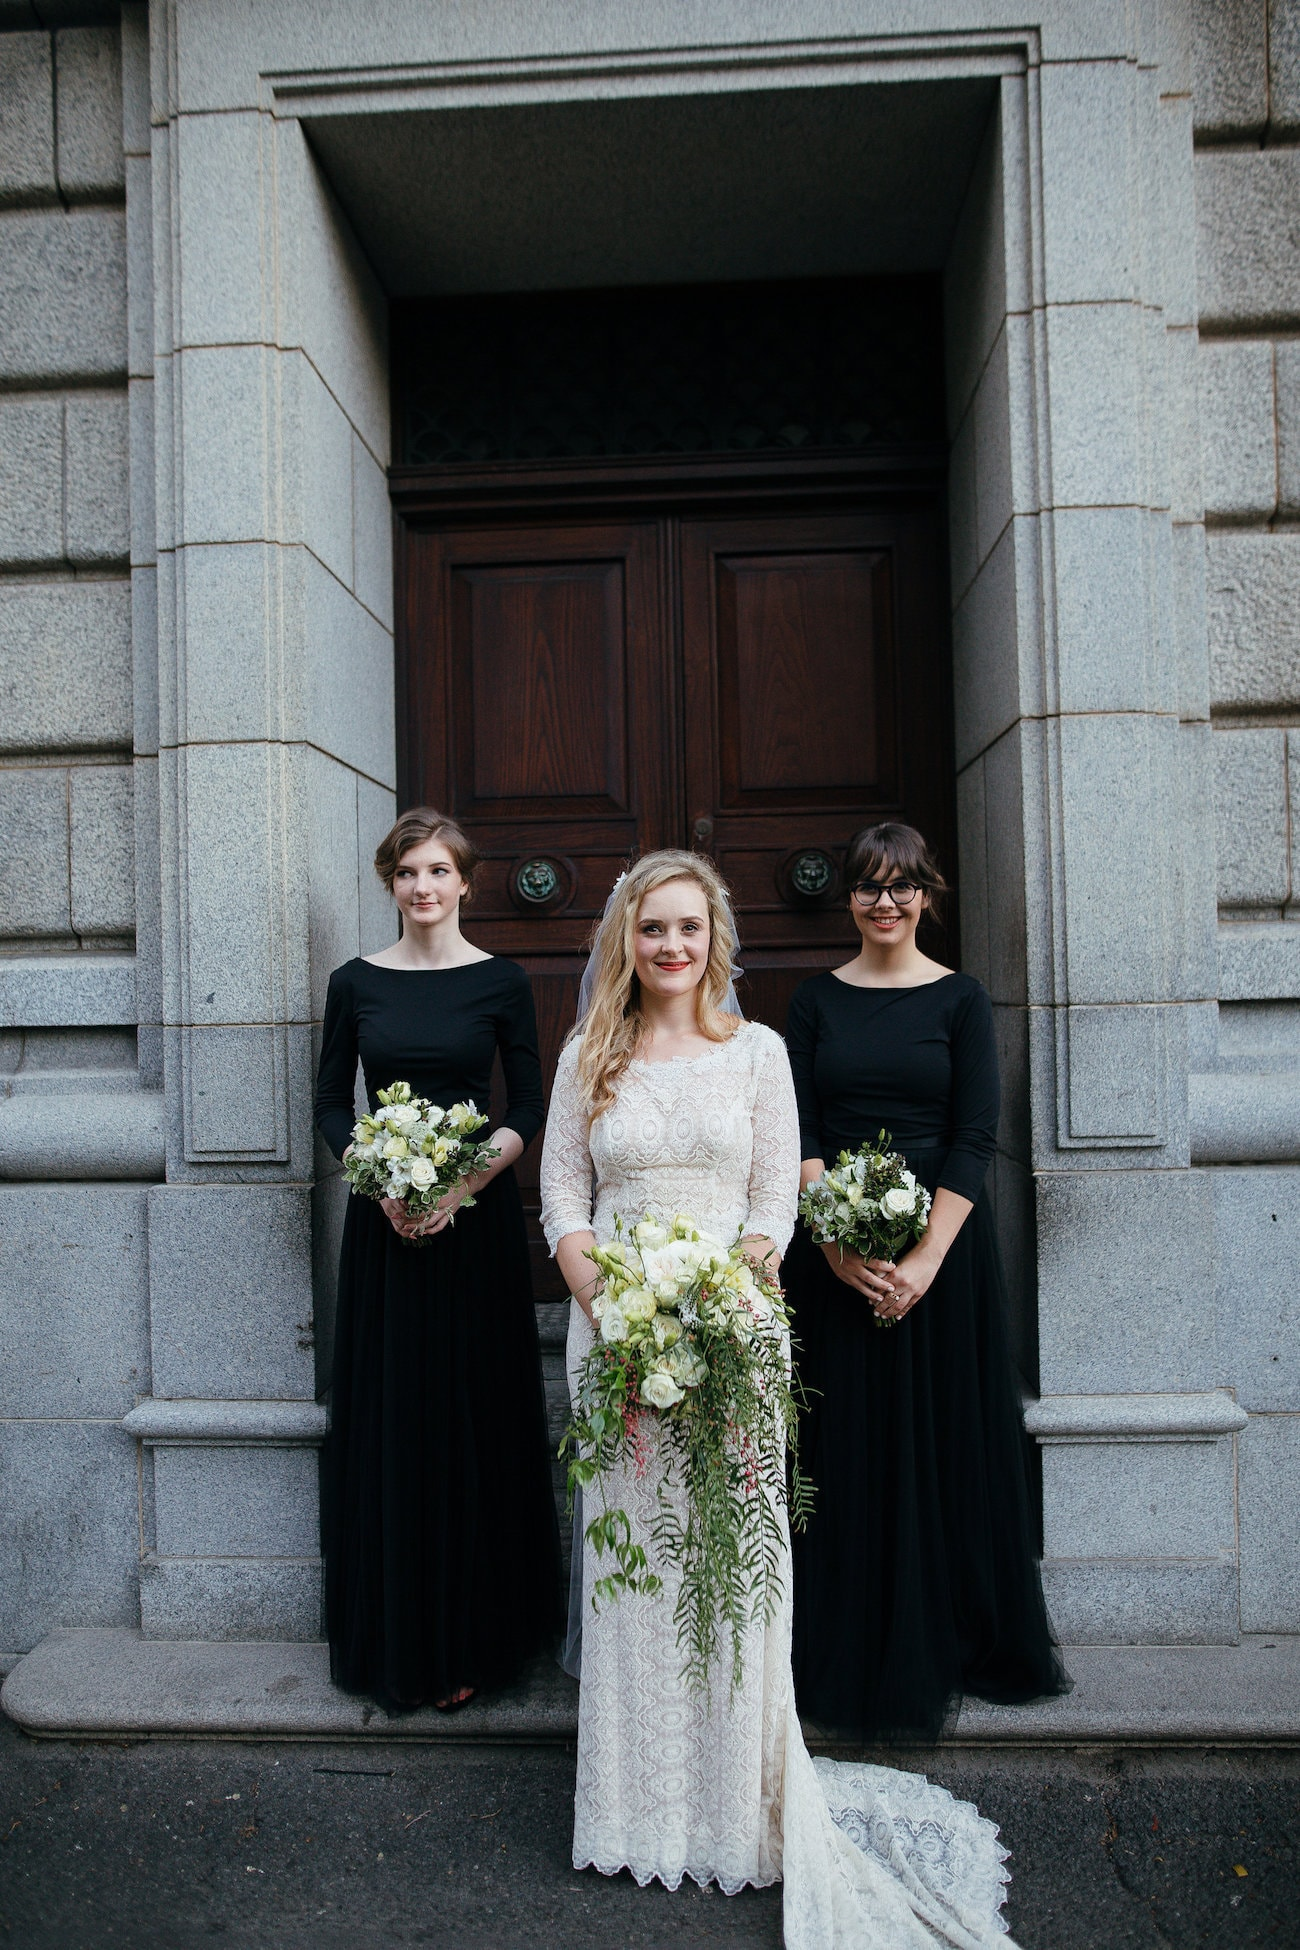 Black Long Sleeve Bridesmaid Dresses | Vintage Chic City Wedding at the Cape Town Club | Credit: Duane Smith